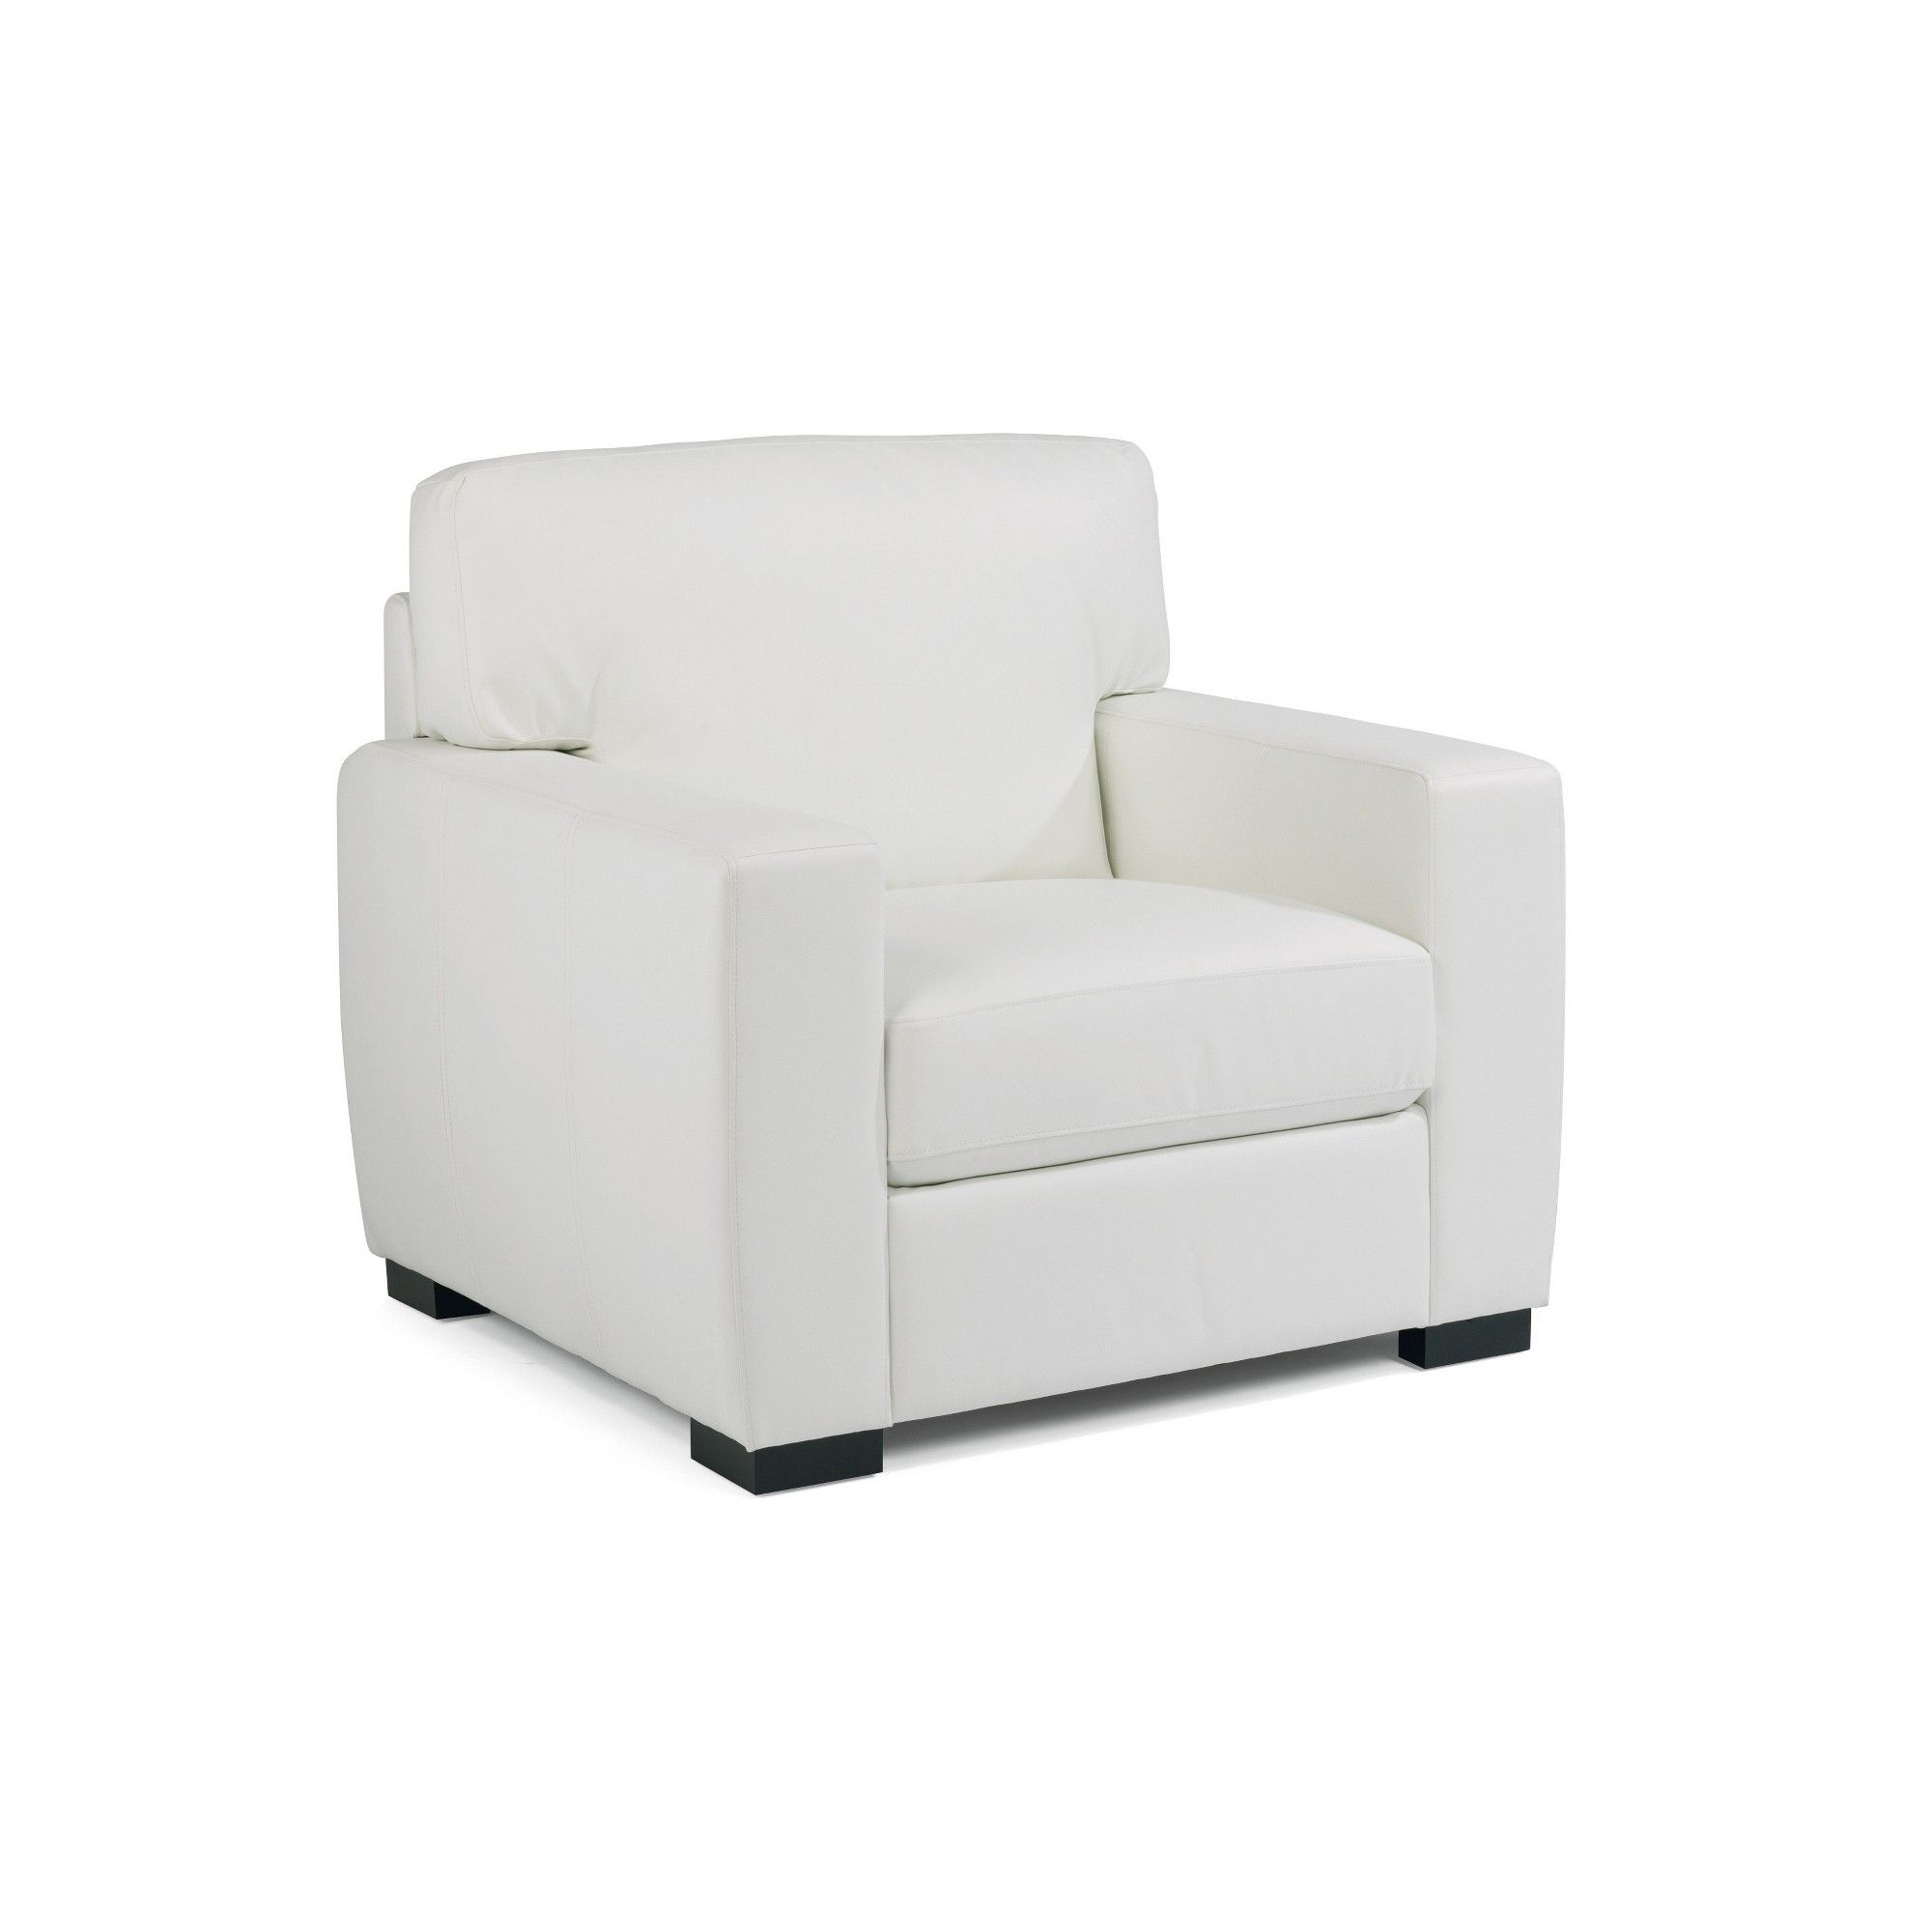 Erin Upholstered Contemporary Chair Ivory Home Styles White